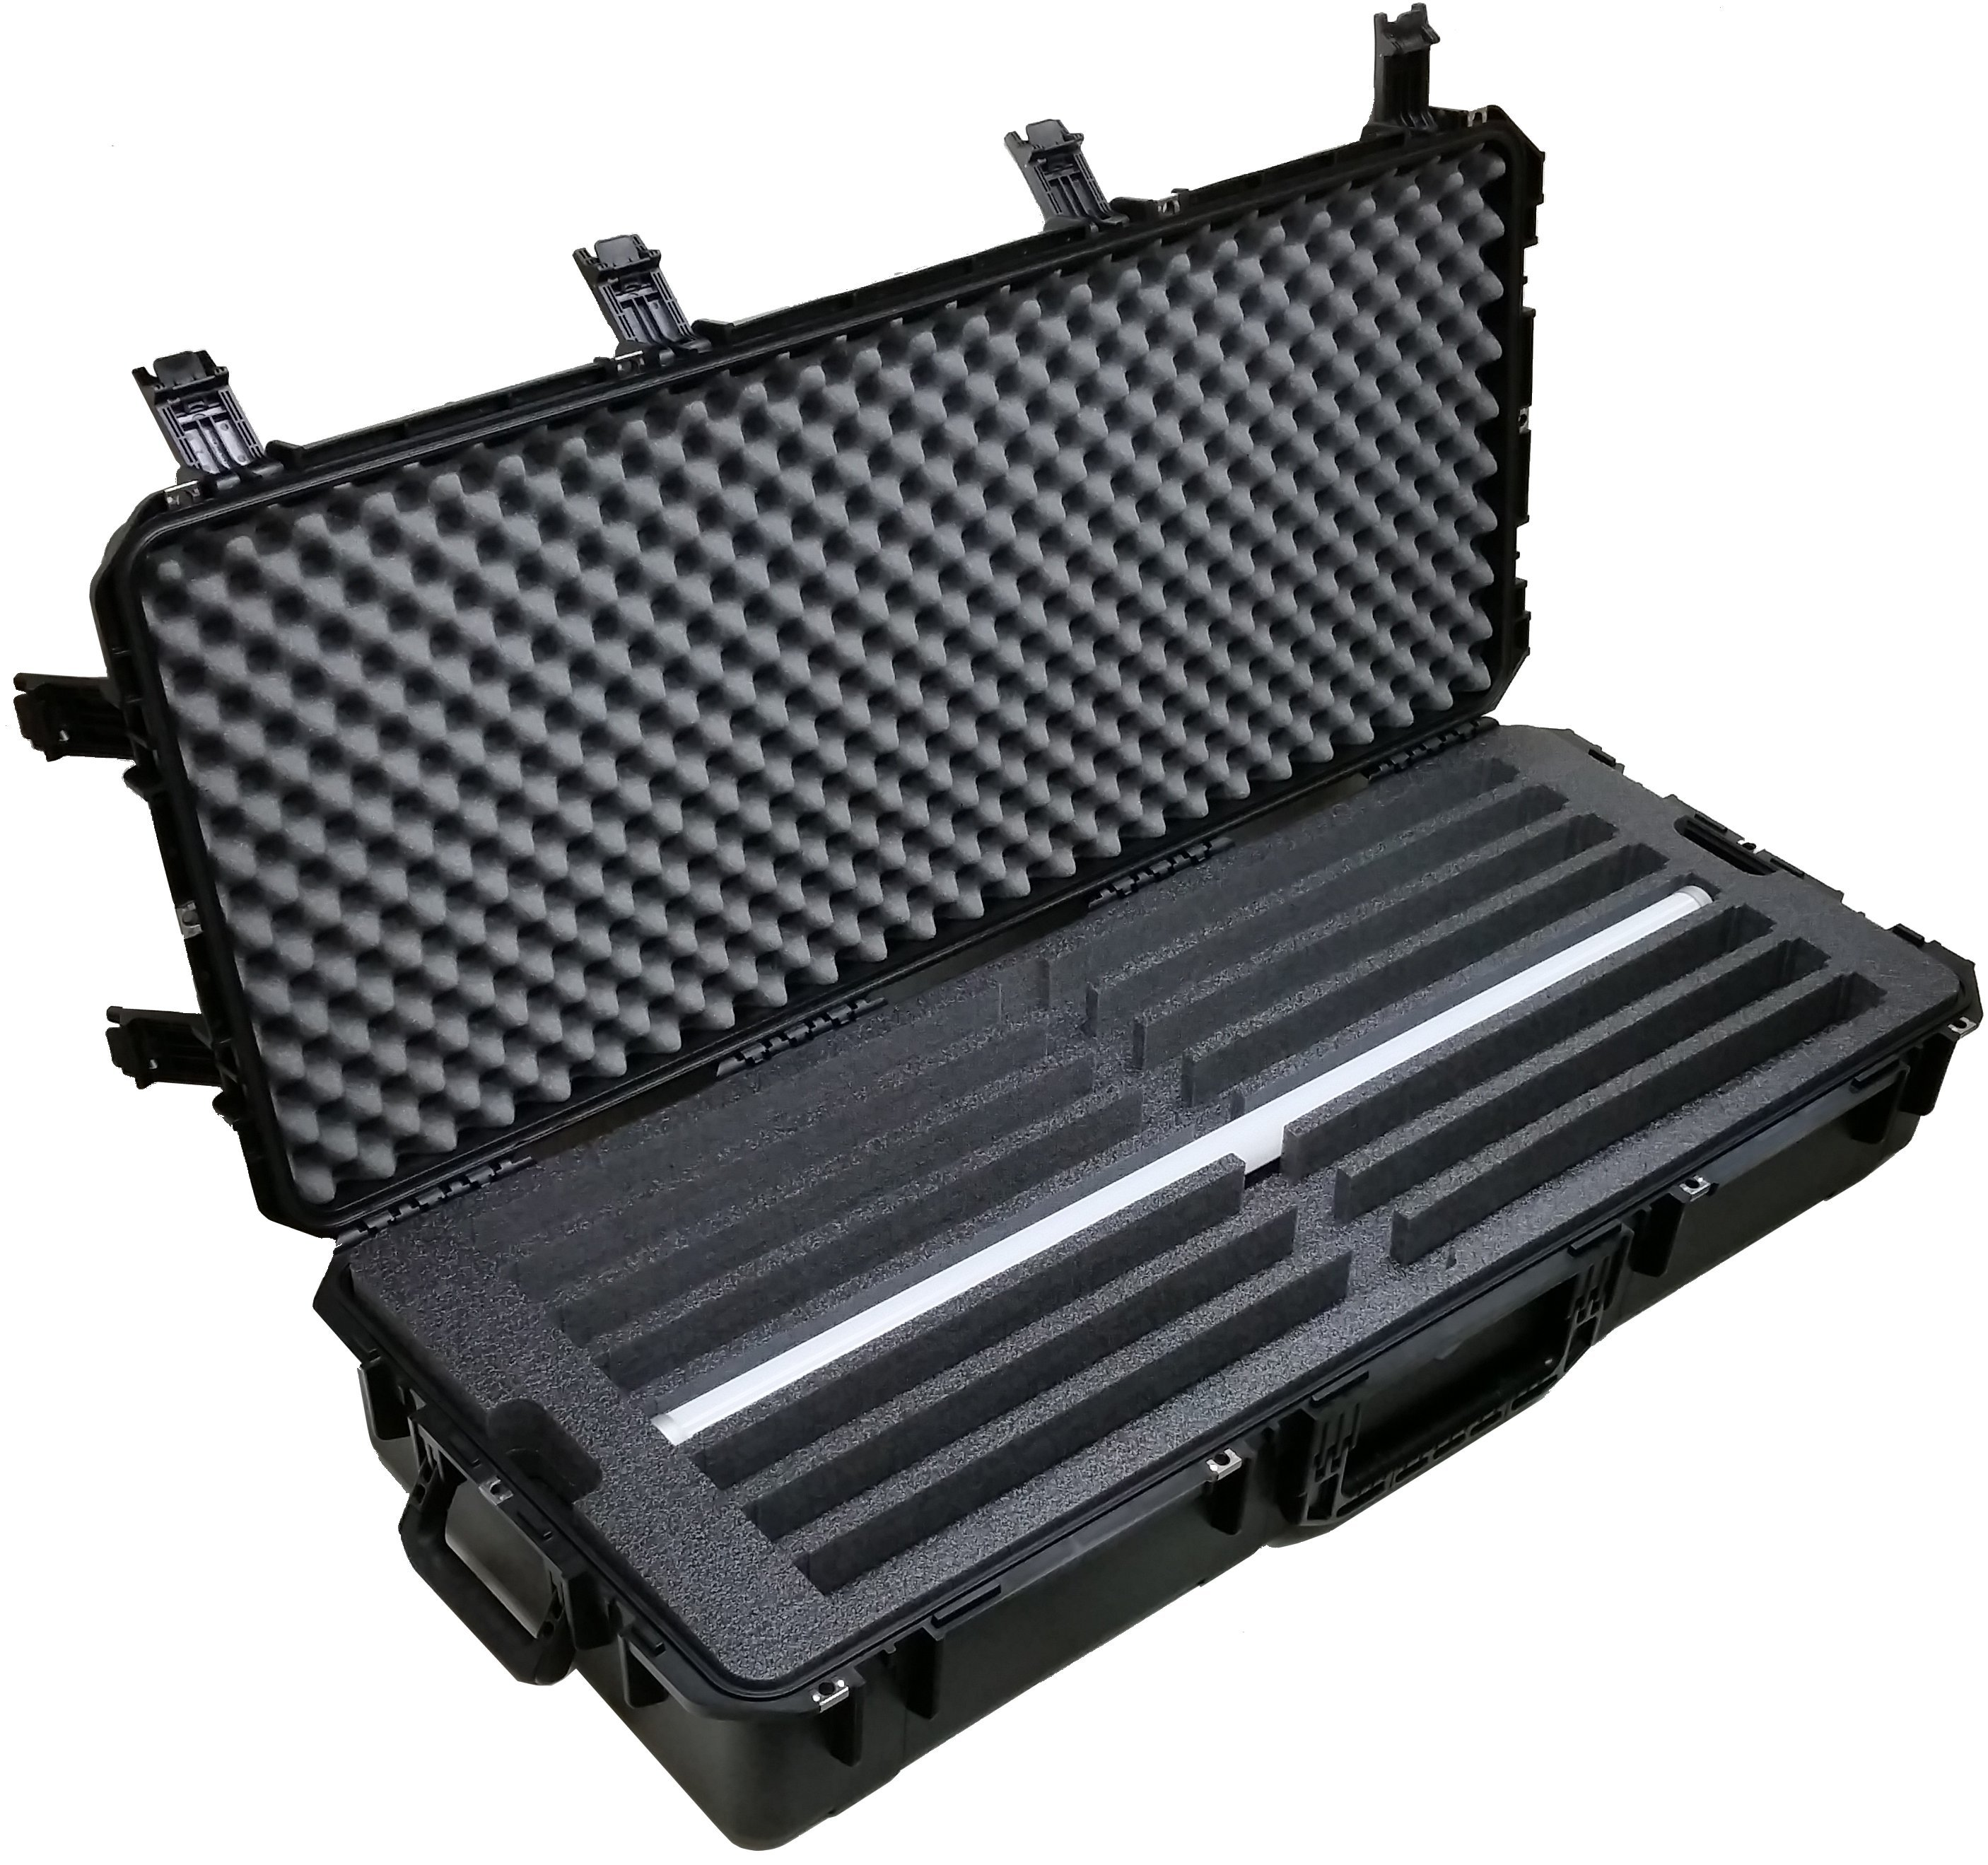 Case Club CC471983ISK Case Custom Foam Example: Astera LED AX1-U PixelTube Light Case